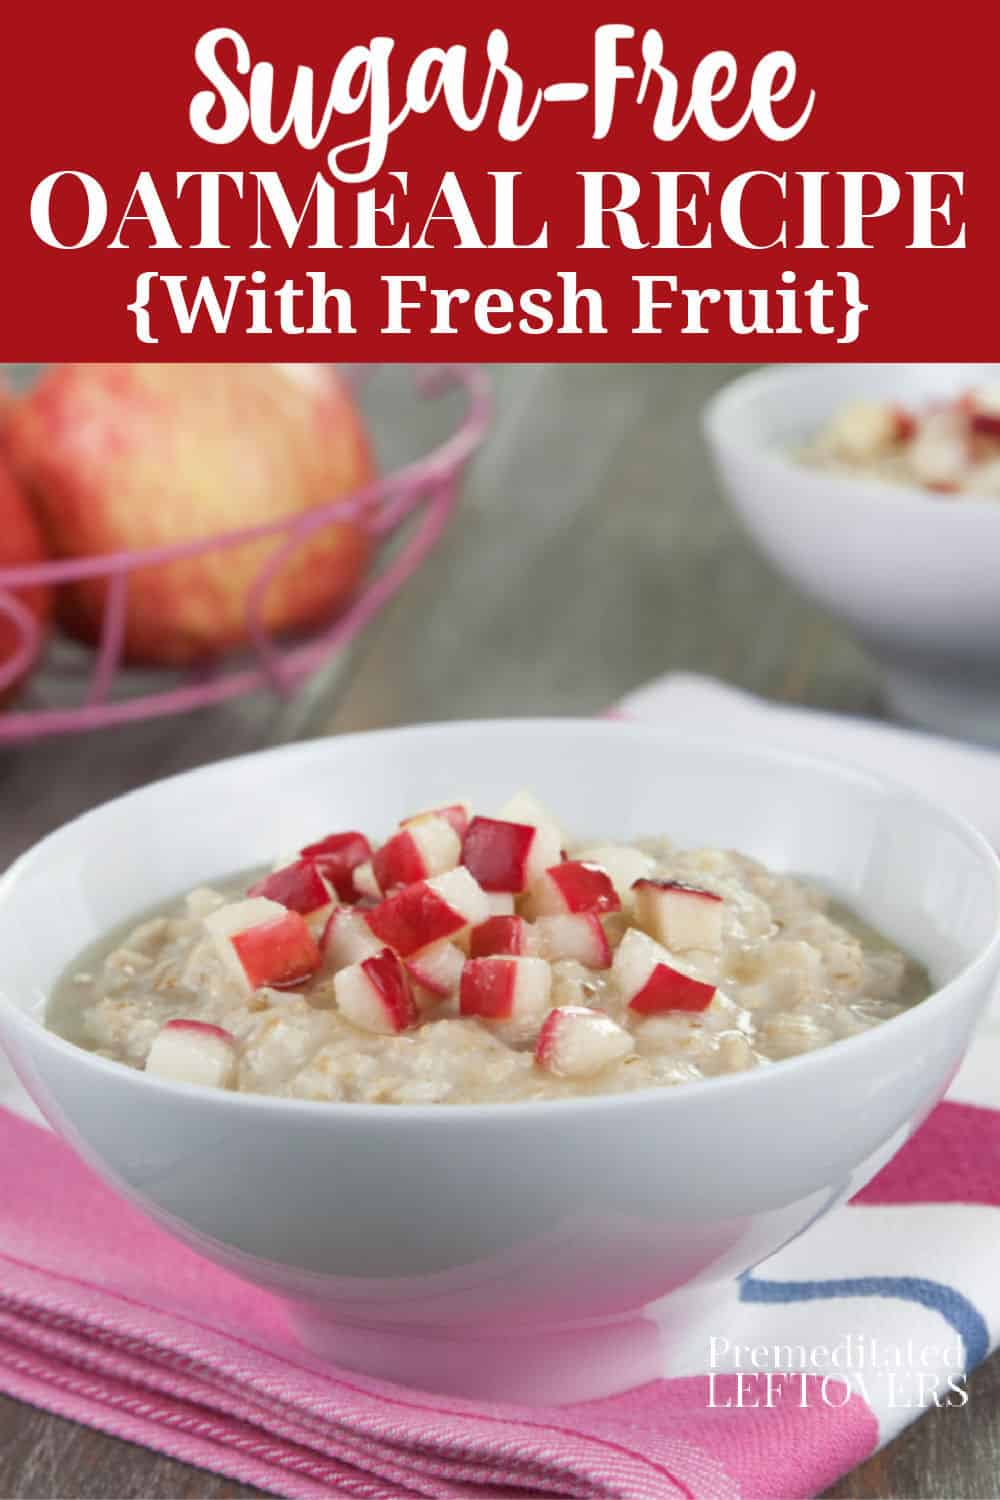 quick and easy sugar-free oatmeal recipe made with fresh fruit